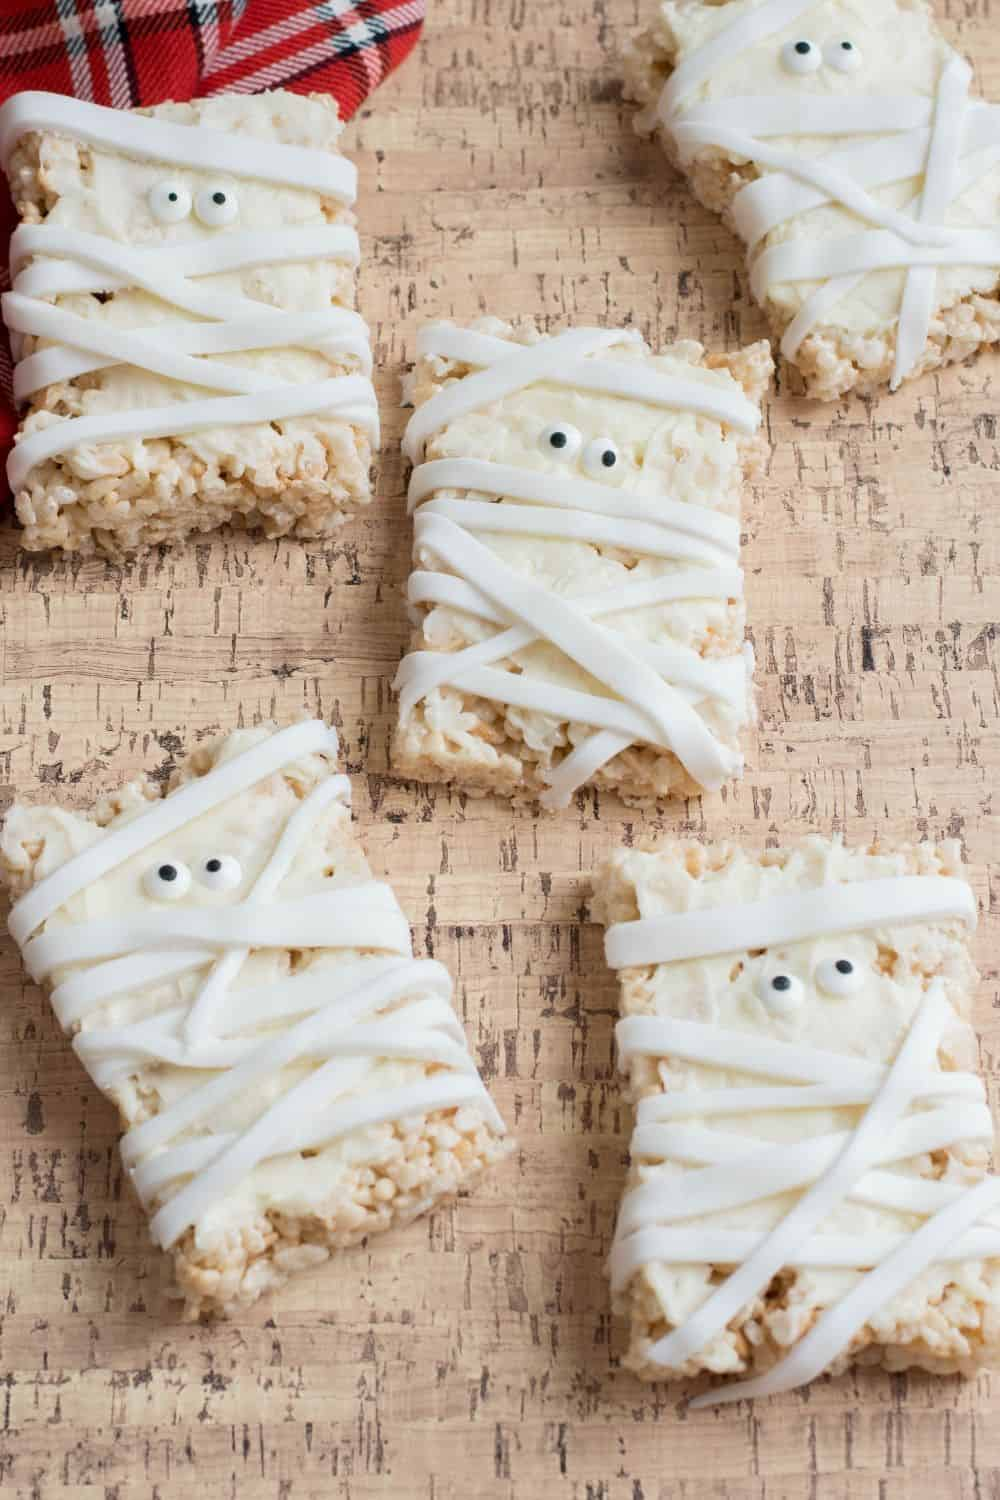 These Mummy Rice Krispies Treats are freakishly adorable. This spooky Halloween treat is perfect to make for the kids this Halloween. #halloweentreats #ricekrispiestreats #halloweensnack #mummytreat